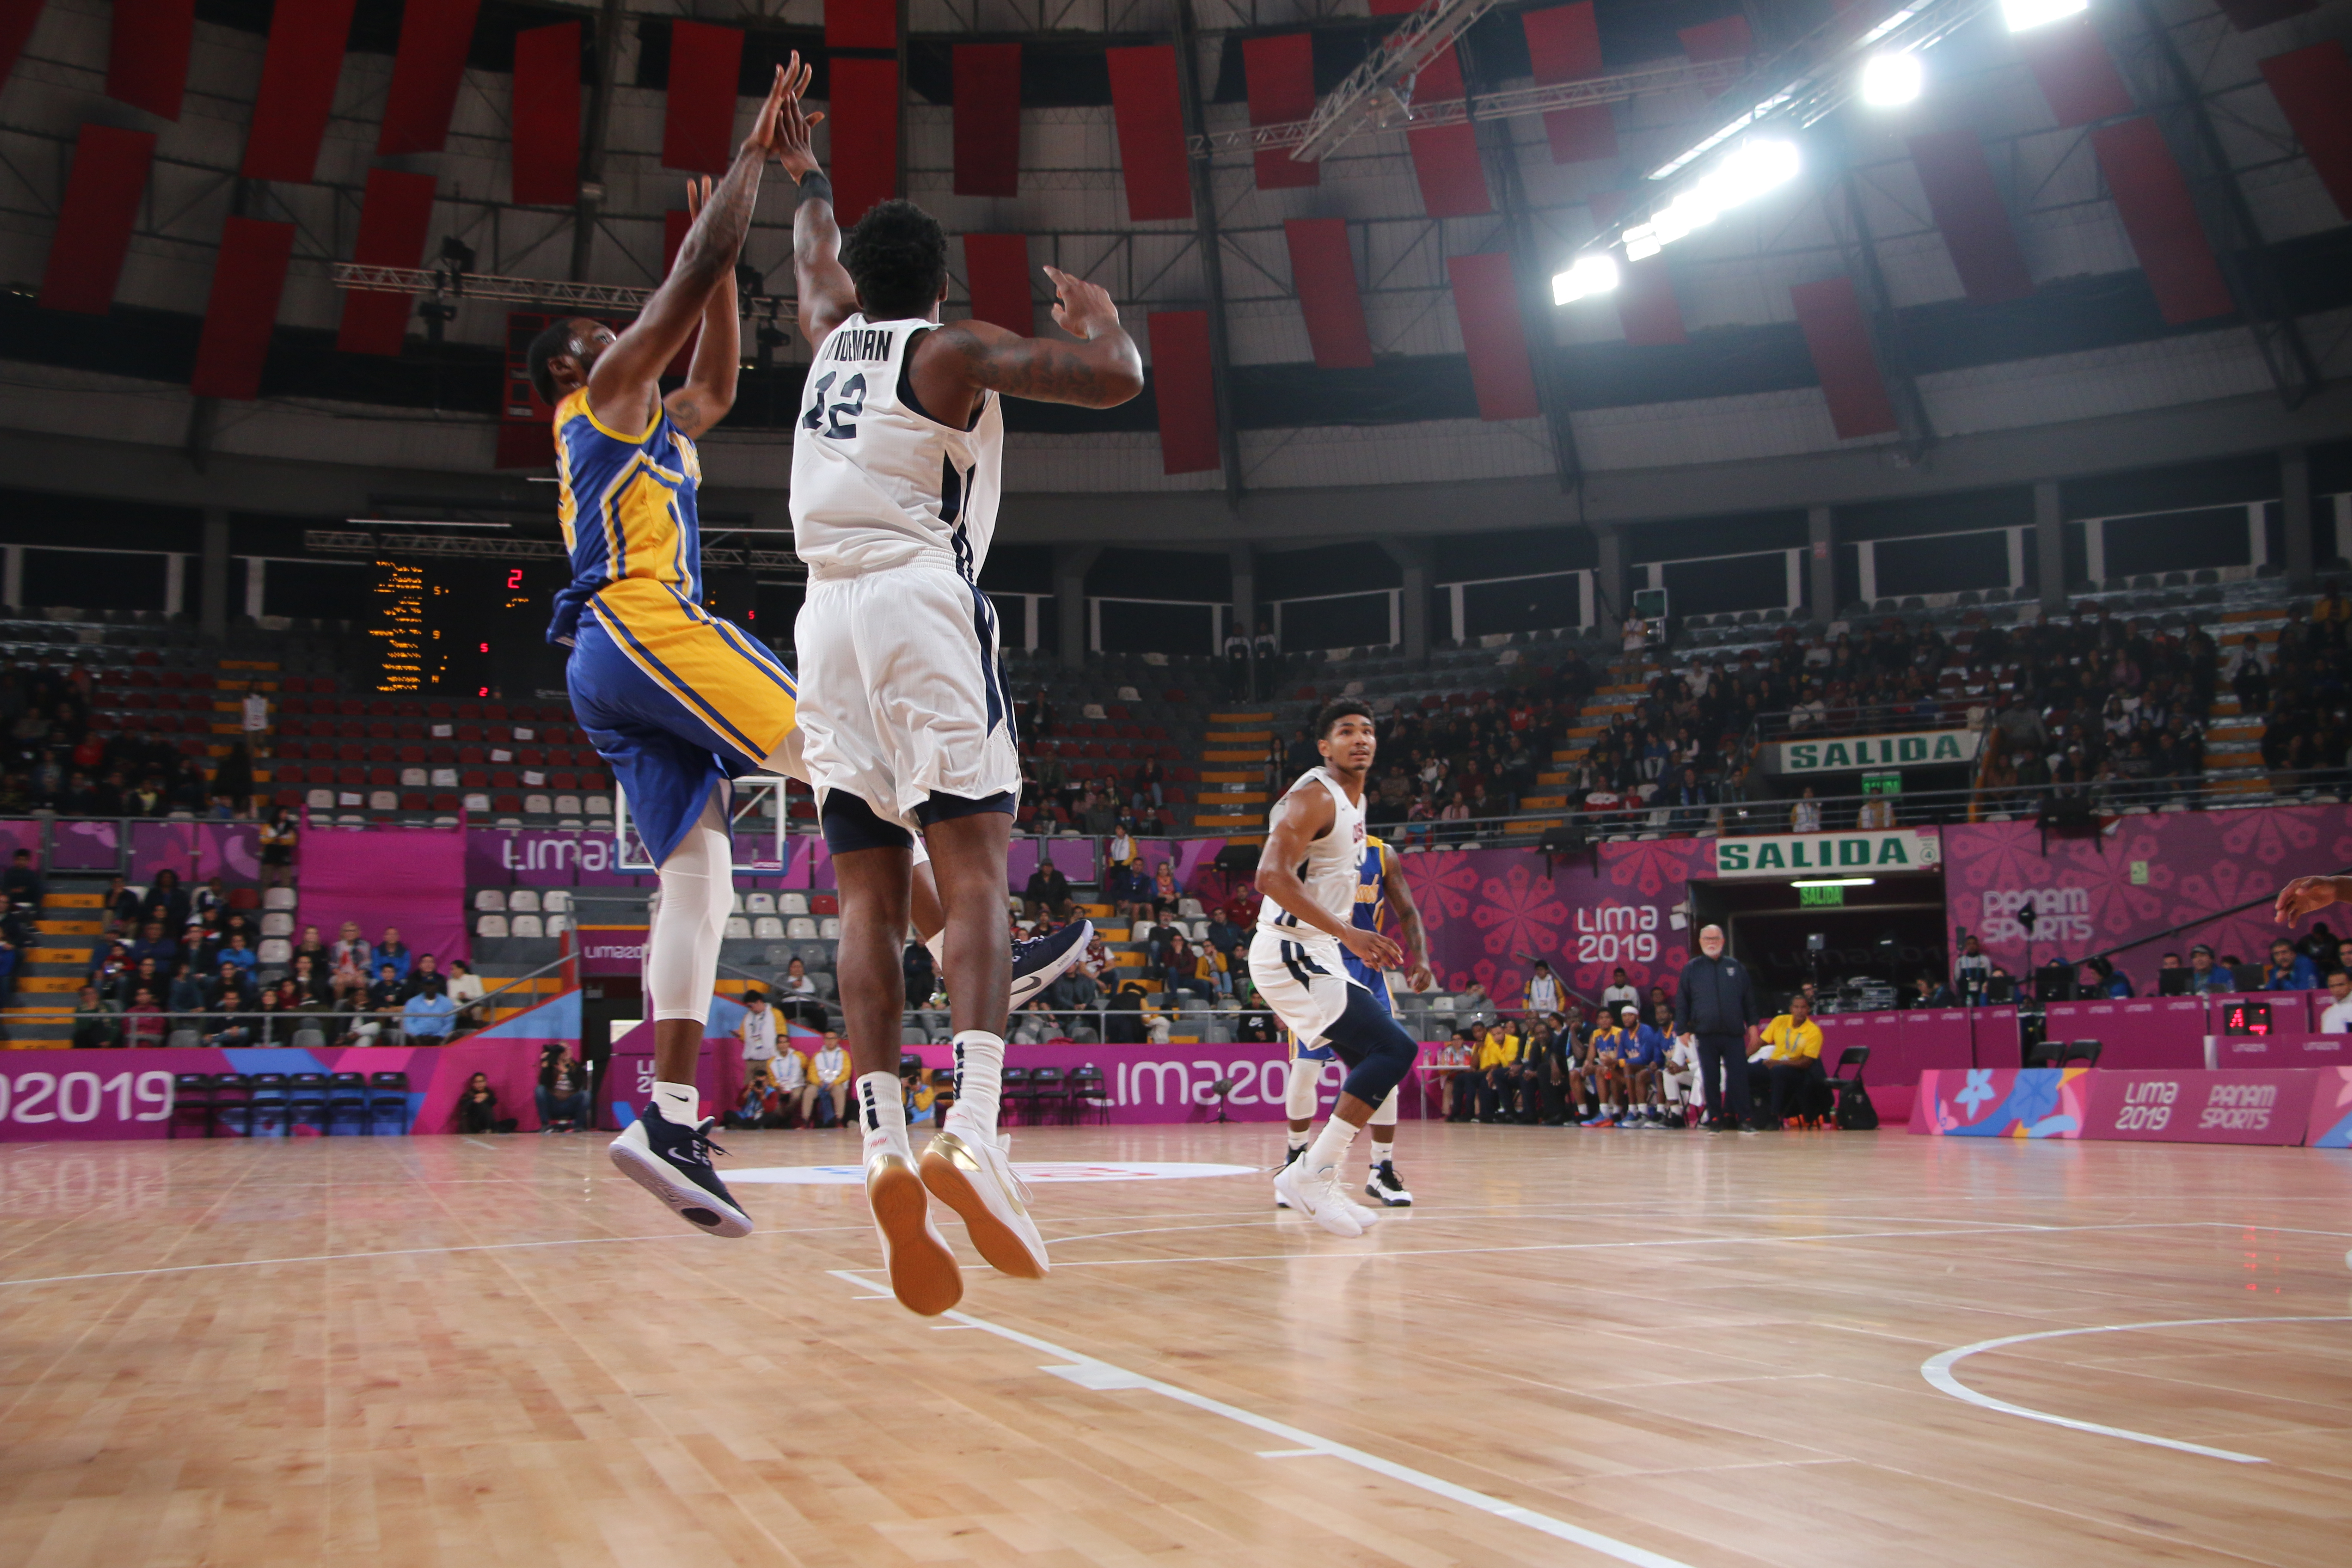 USVI Loses First Game Against USA in 2019 Pan Am Games Debut